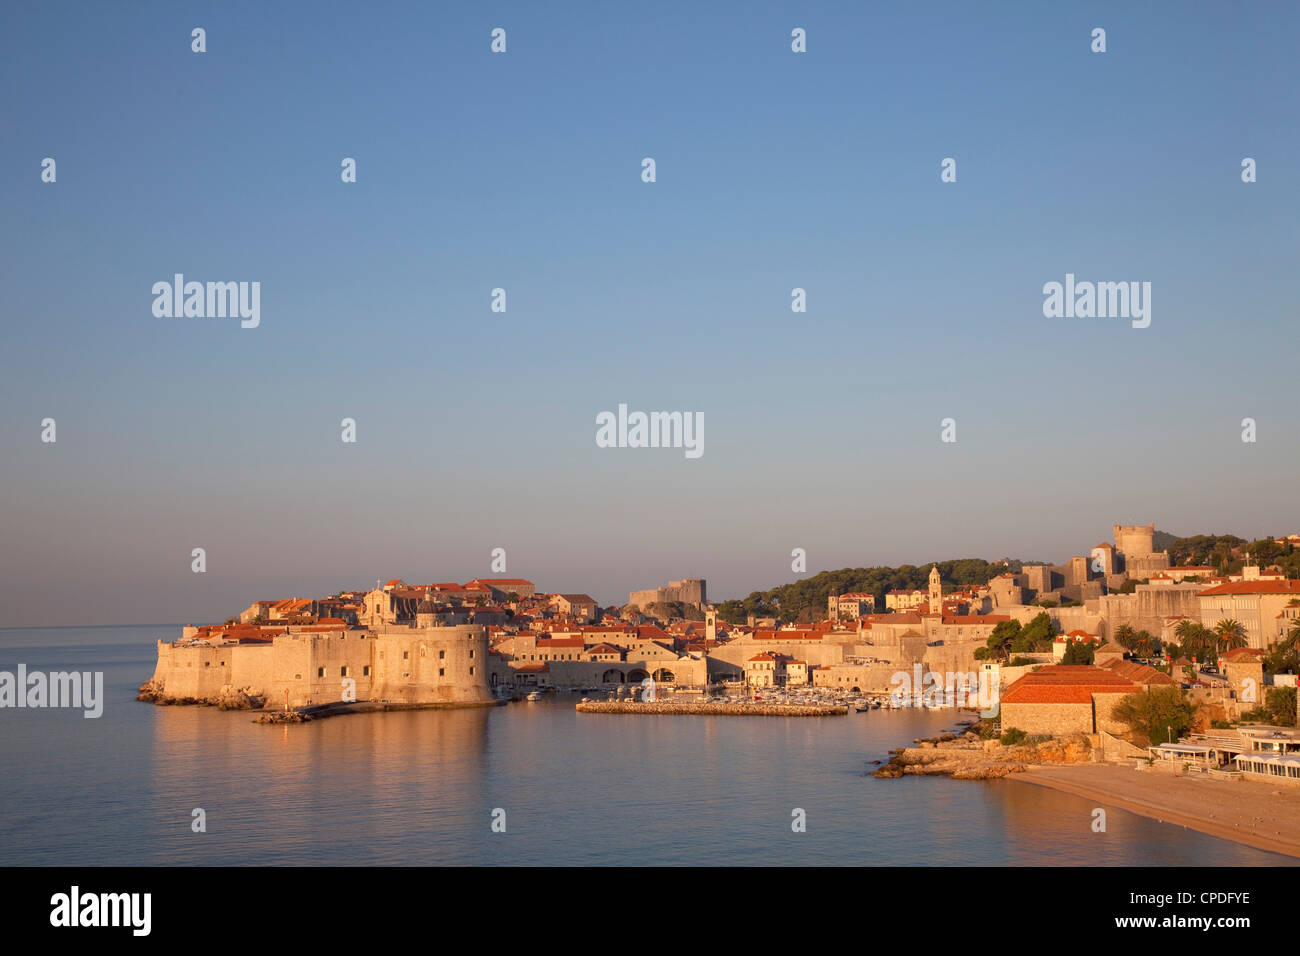 View of Old Town in the early evening, UNESCO World Heritage Site, Dubrovnik, Croatia, Europe - Stock Image